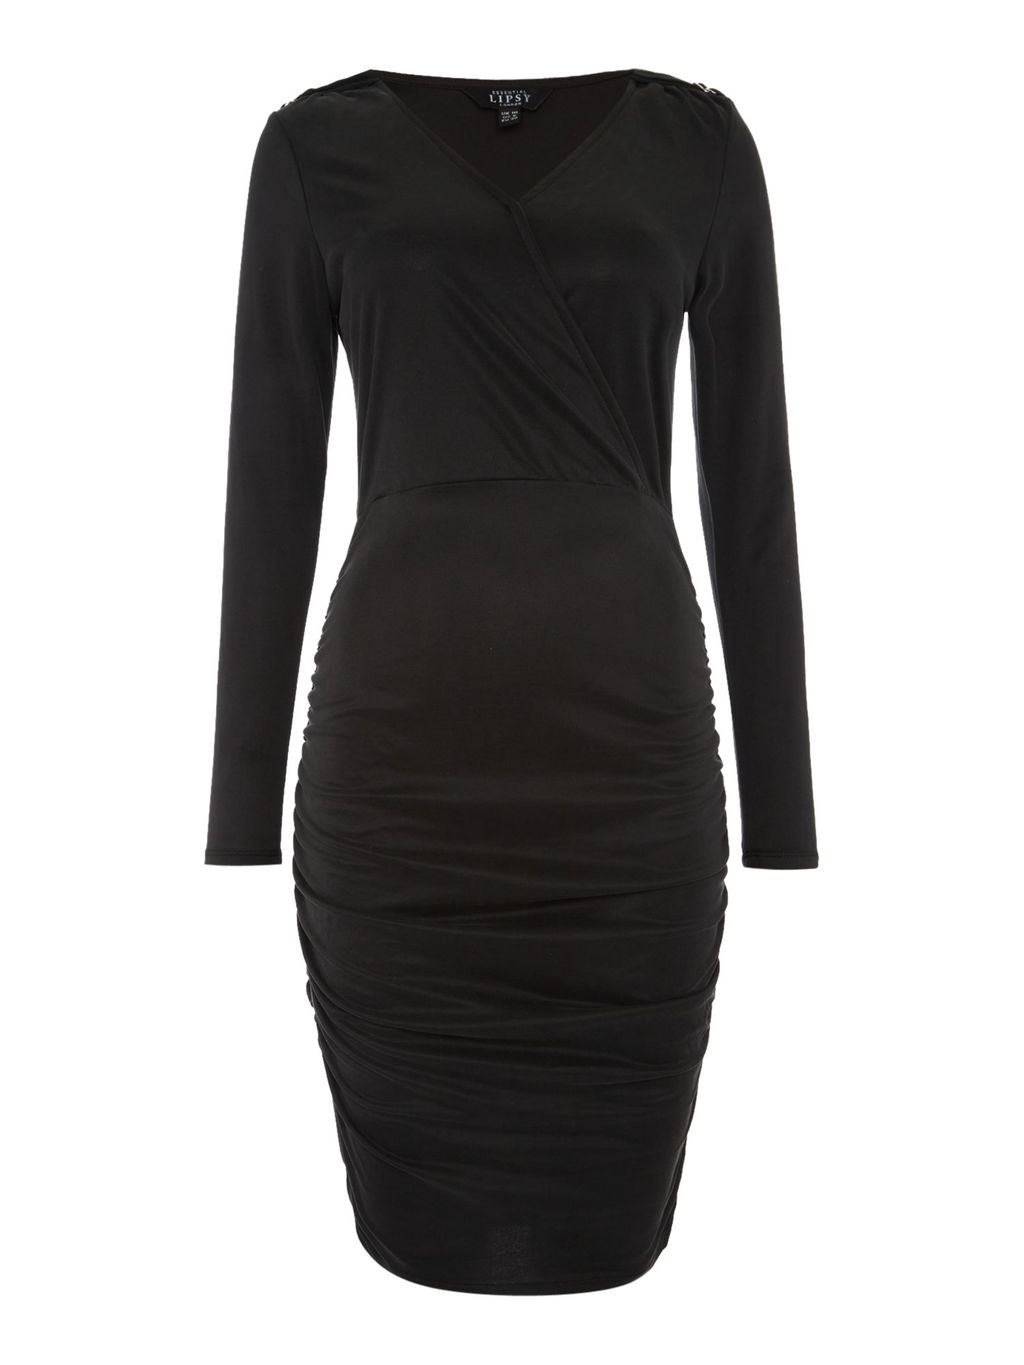 Long Sleeve V Wrap Dress, Black - length: below the knee; neckline: v-neck; pattern: plain; style: bodycon; bust detail: ruching/gathering/draping/layers/pintuck pleats at bust; predominant colour: black; occasions: evening; fit: body skimming; fibres: viscose/rayon - stretch; sleeve length: long sleeve; sleeve style: standard; pattern type: fabric; texture group: jersey - stretchy/drapey; season: s/s 2016; wardrobe: event